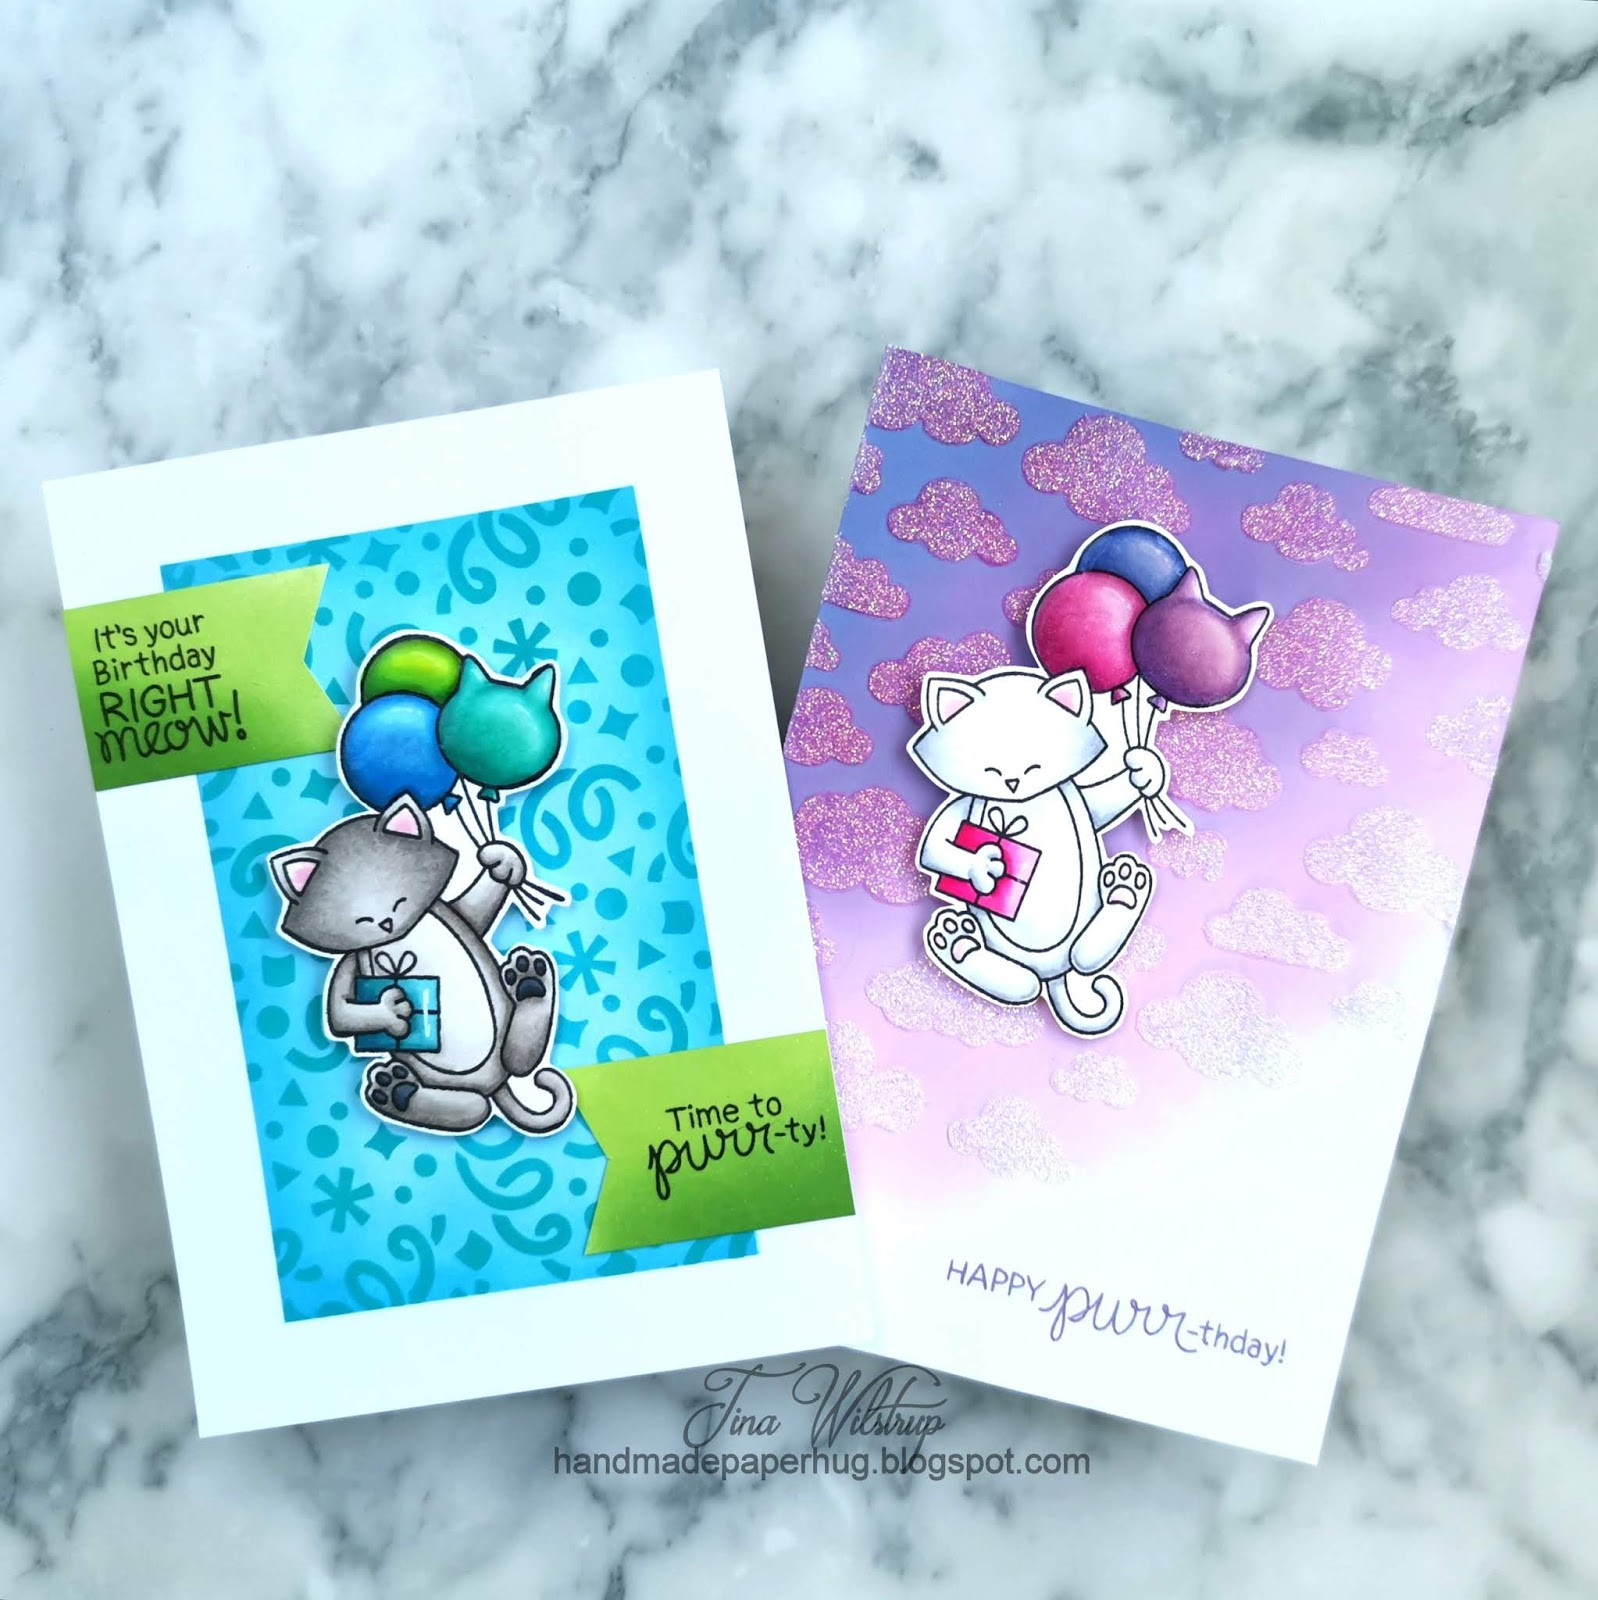 Masculine And Feminine Birthday Cards by January Guest Designer Tina Wilstrup | Newton's Birthday Balloons Stamp Set, Confetti Stencil and Cloudy Sky Stencil by Newton's Nook Designs #newtonsnook #handmade